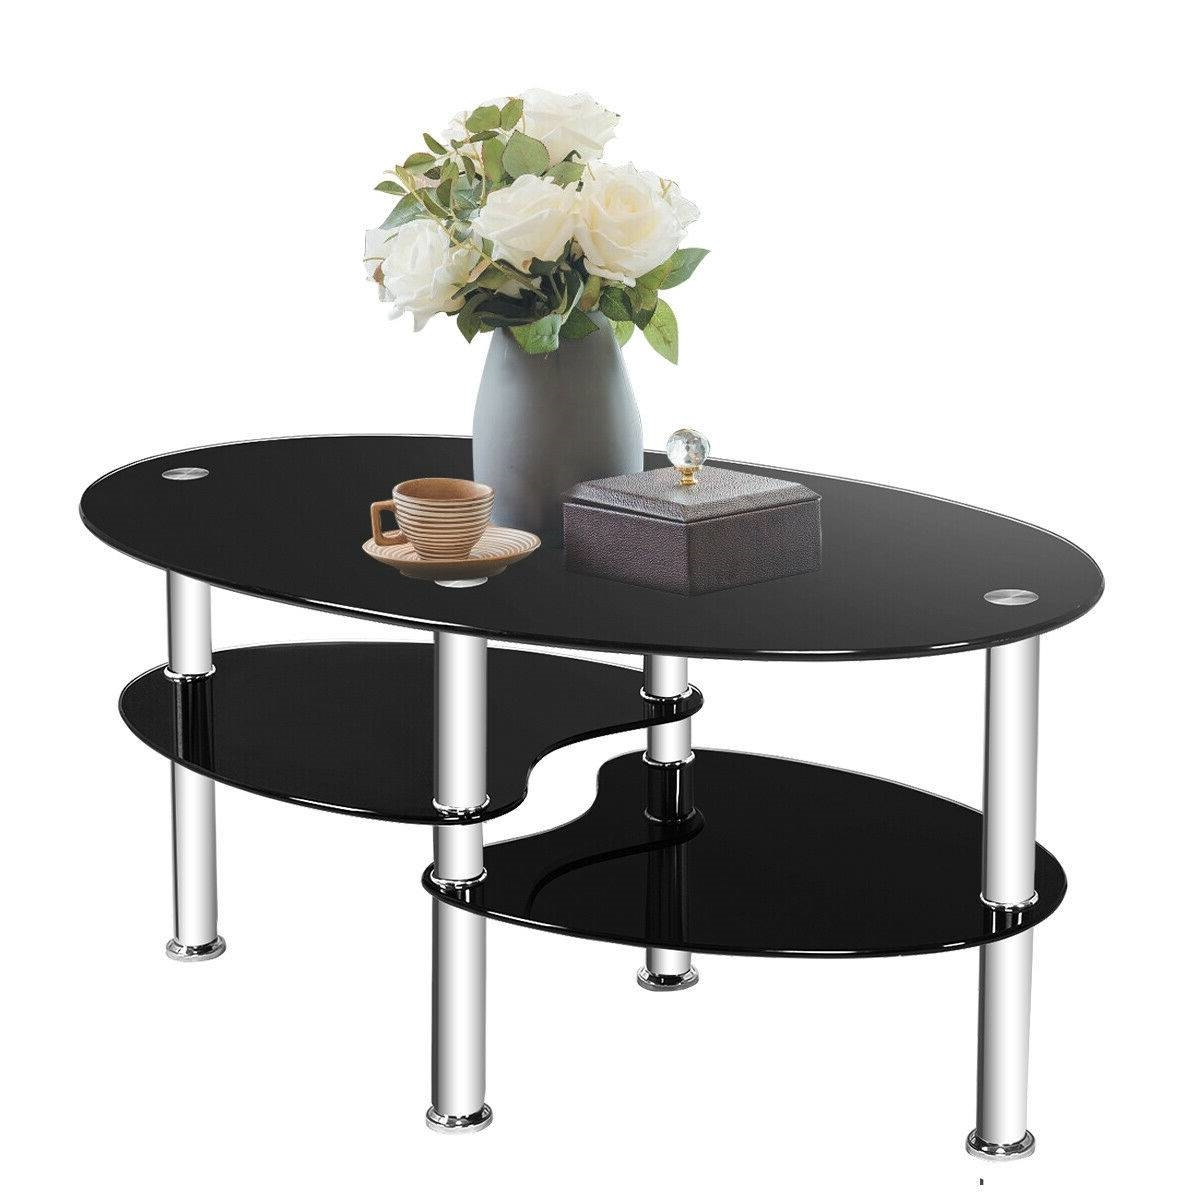 Picture of: Modern Black Tempered Glass Coffee Table With Bottom Shelf Fastfurnishings Com